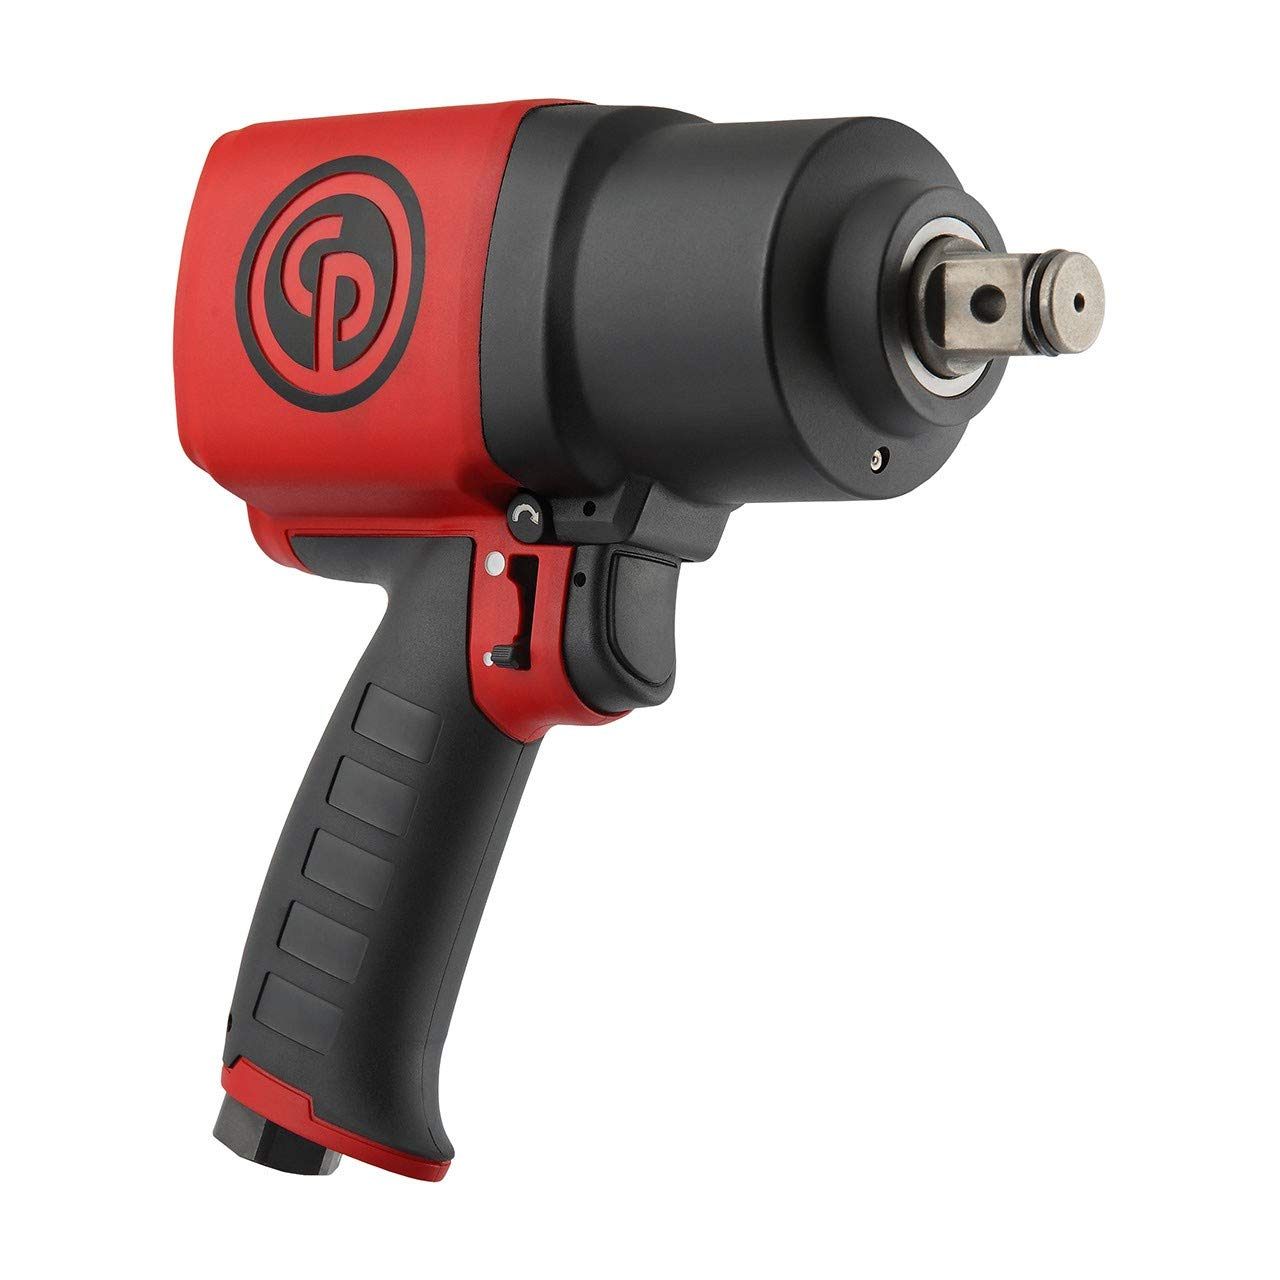 Chicago Pneumatic Tool CP7769 Heavy Duty 3/4-In. Impact Wrench - with  Lightweight Composite Housing. Power and Hand Tools: Amazon.in: Home  Improvement